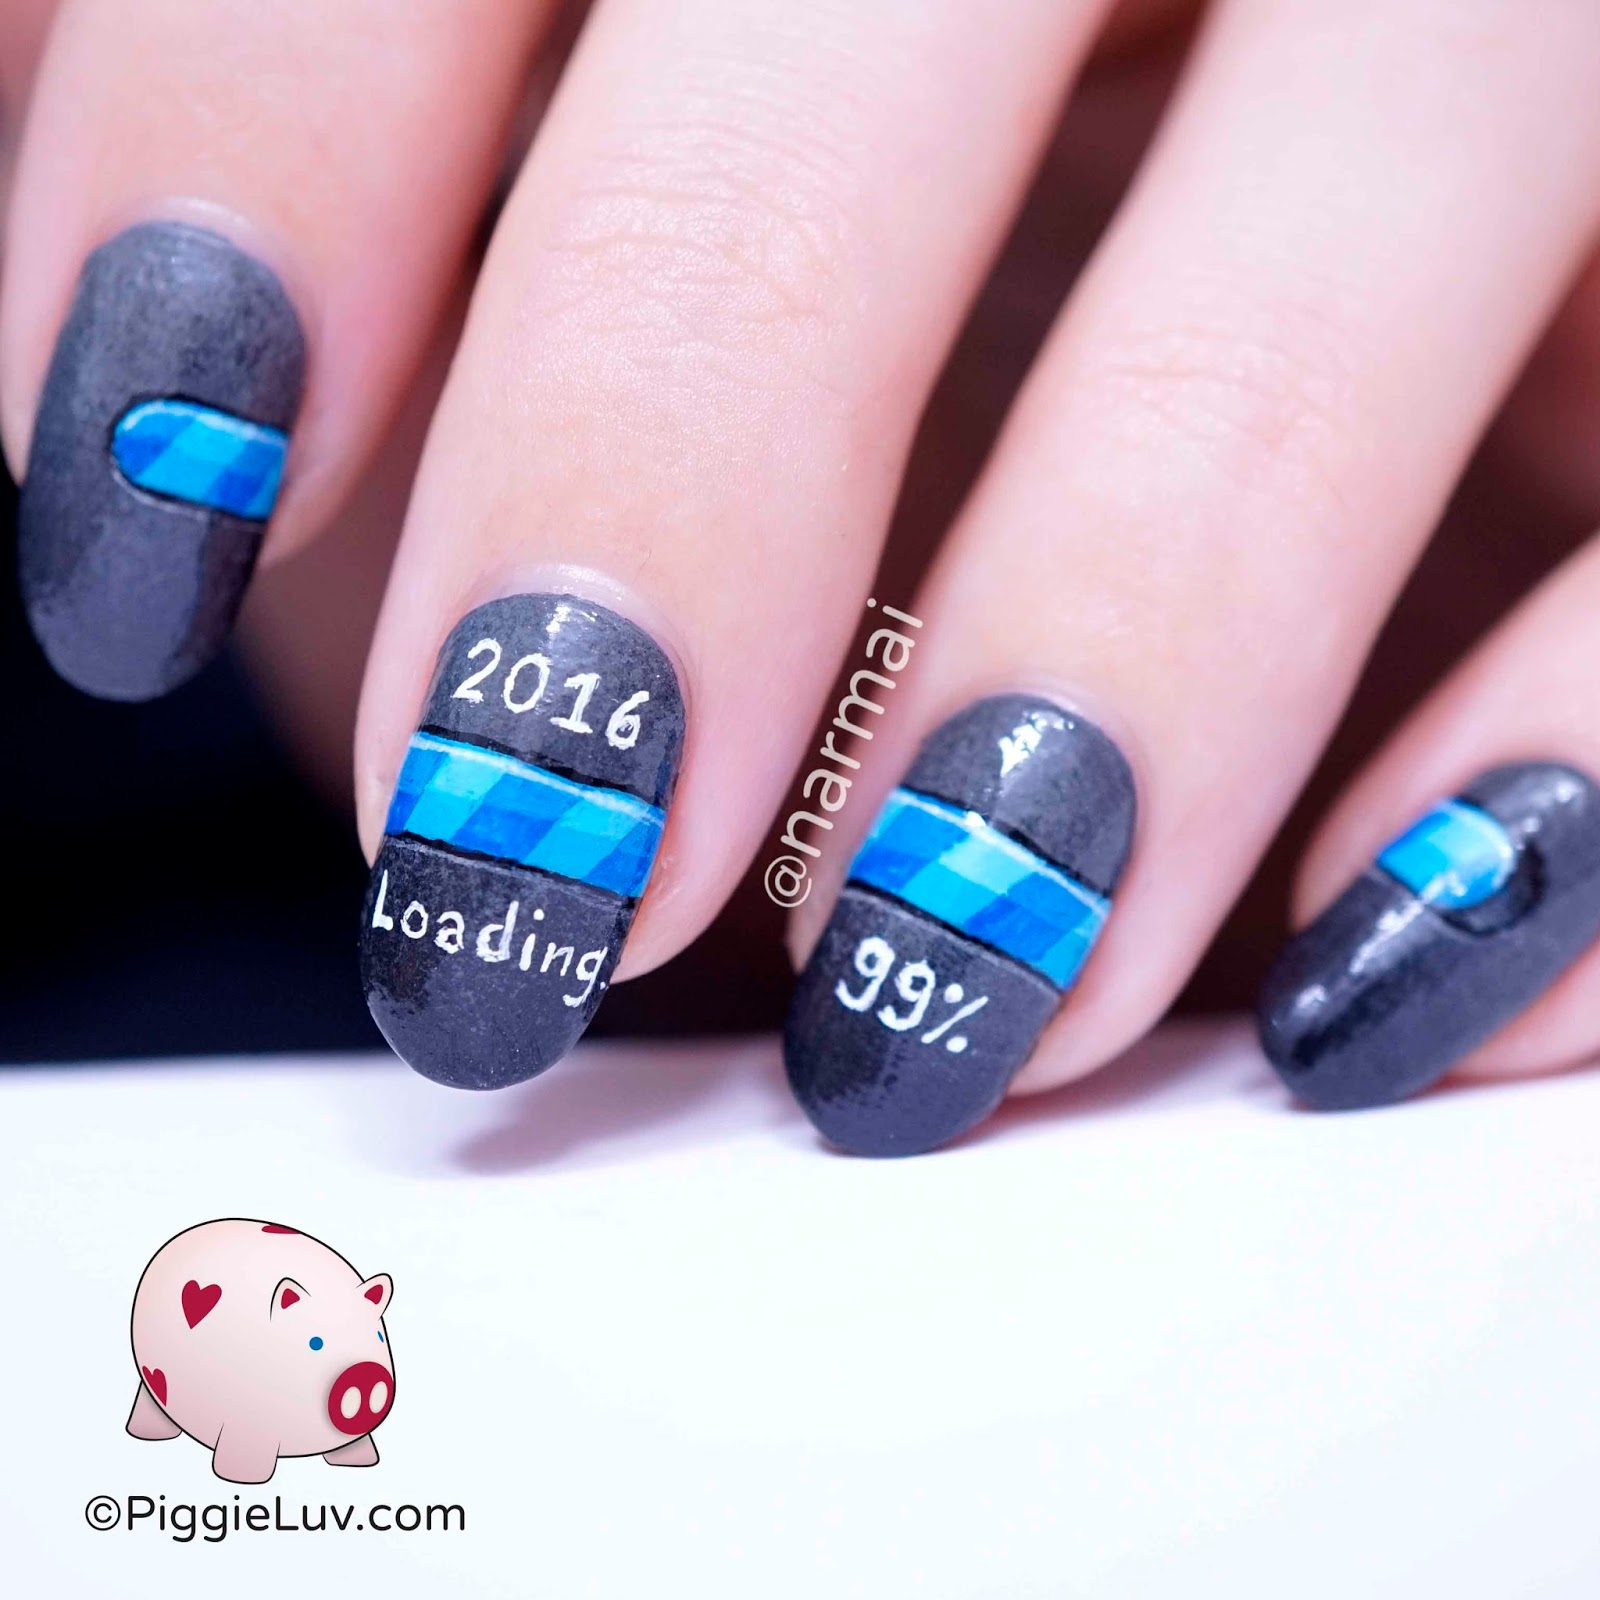 PiggieLuv: 2016 is loading! New Year\'s nail art